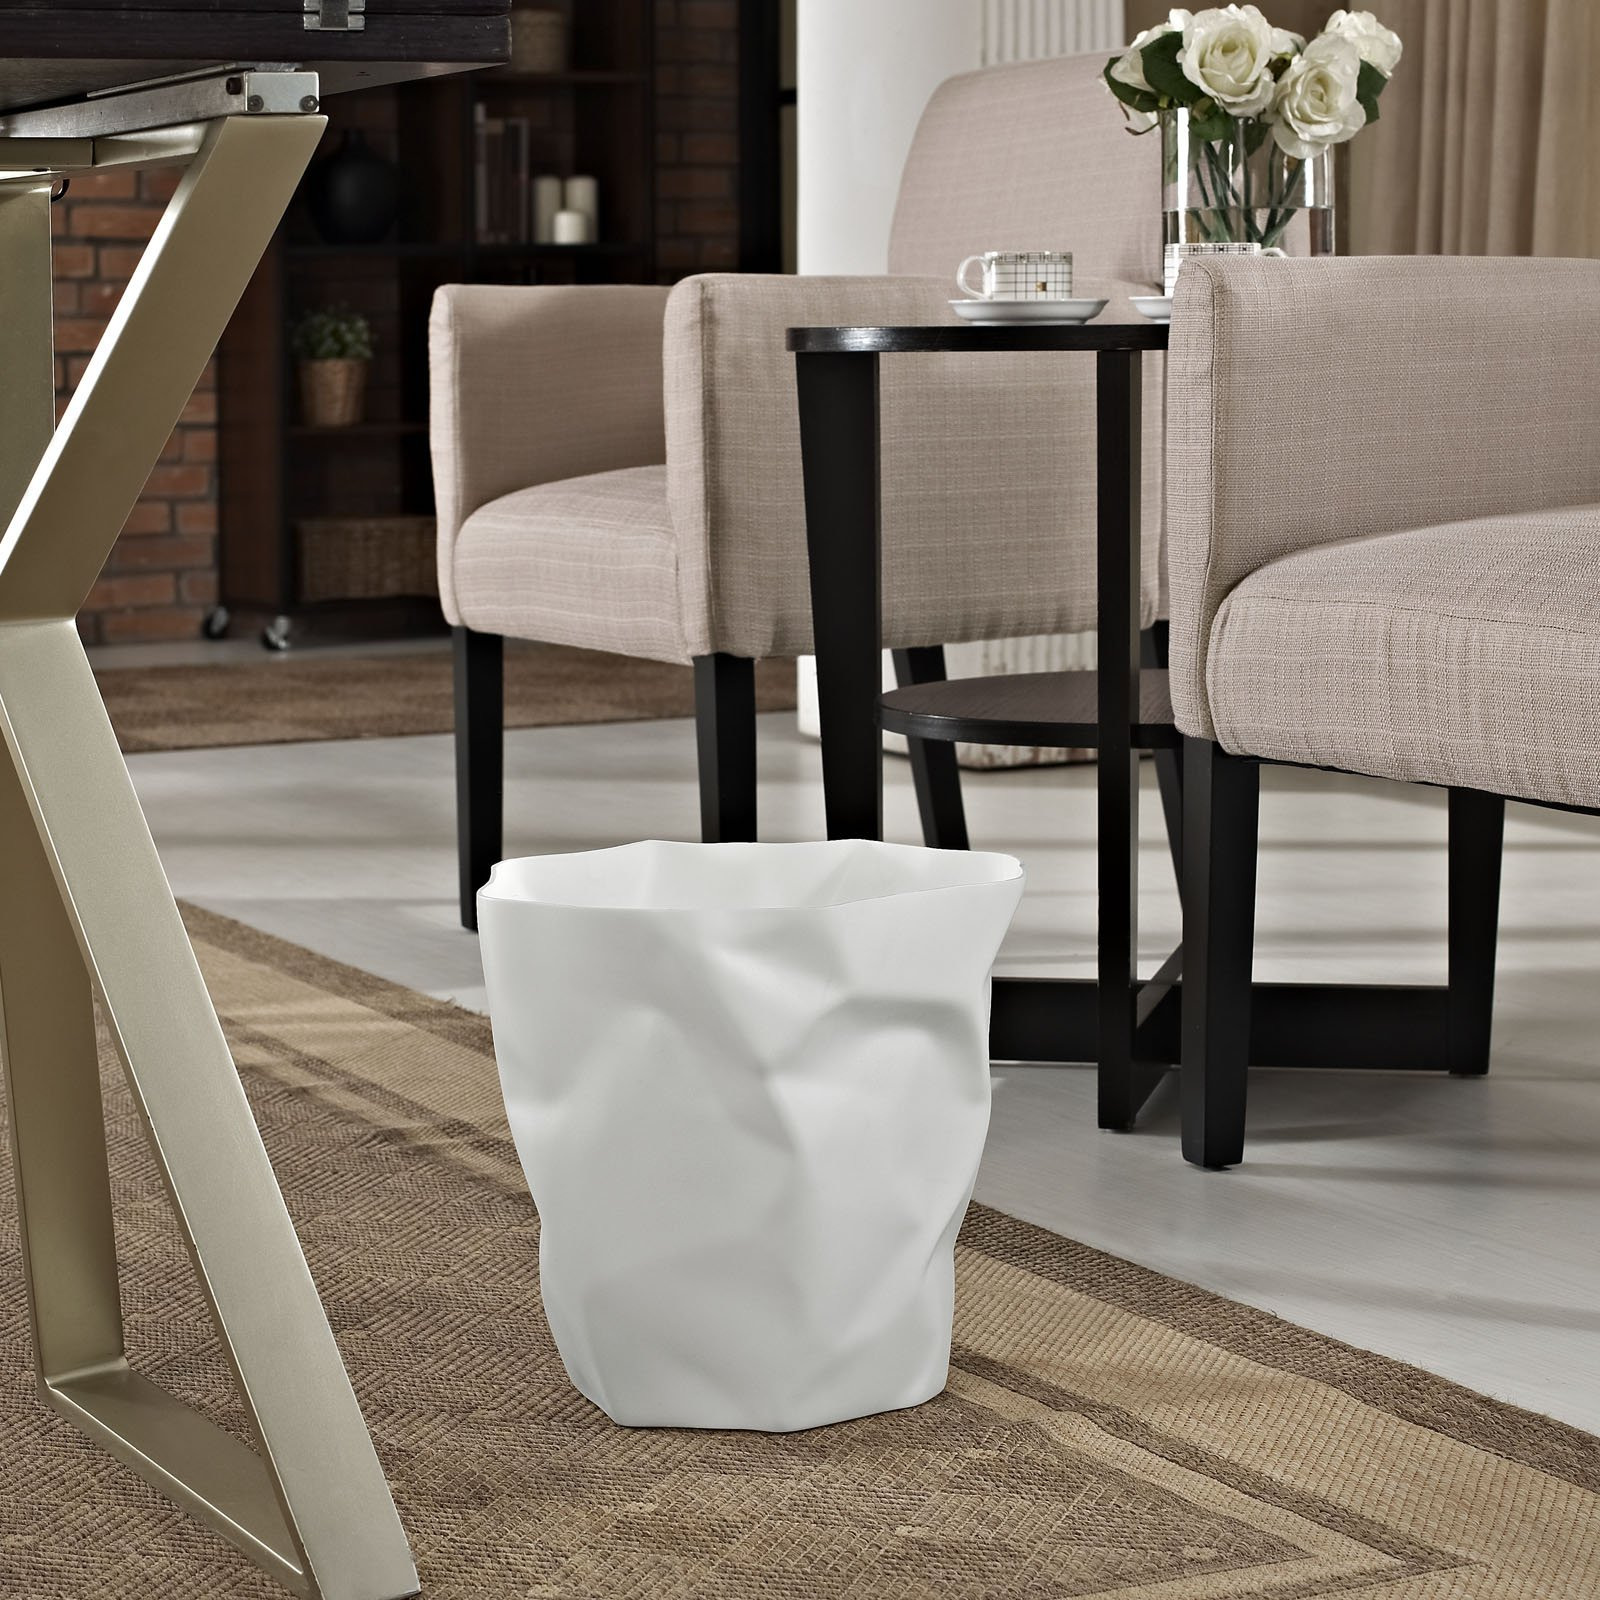 Modern Contemporary Trash Bin White by America Luxury - Accessories (Image #4)